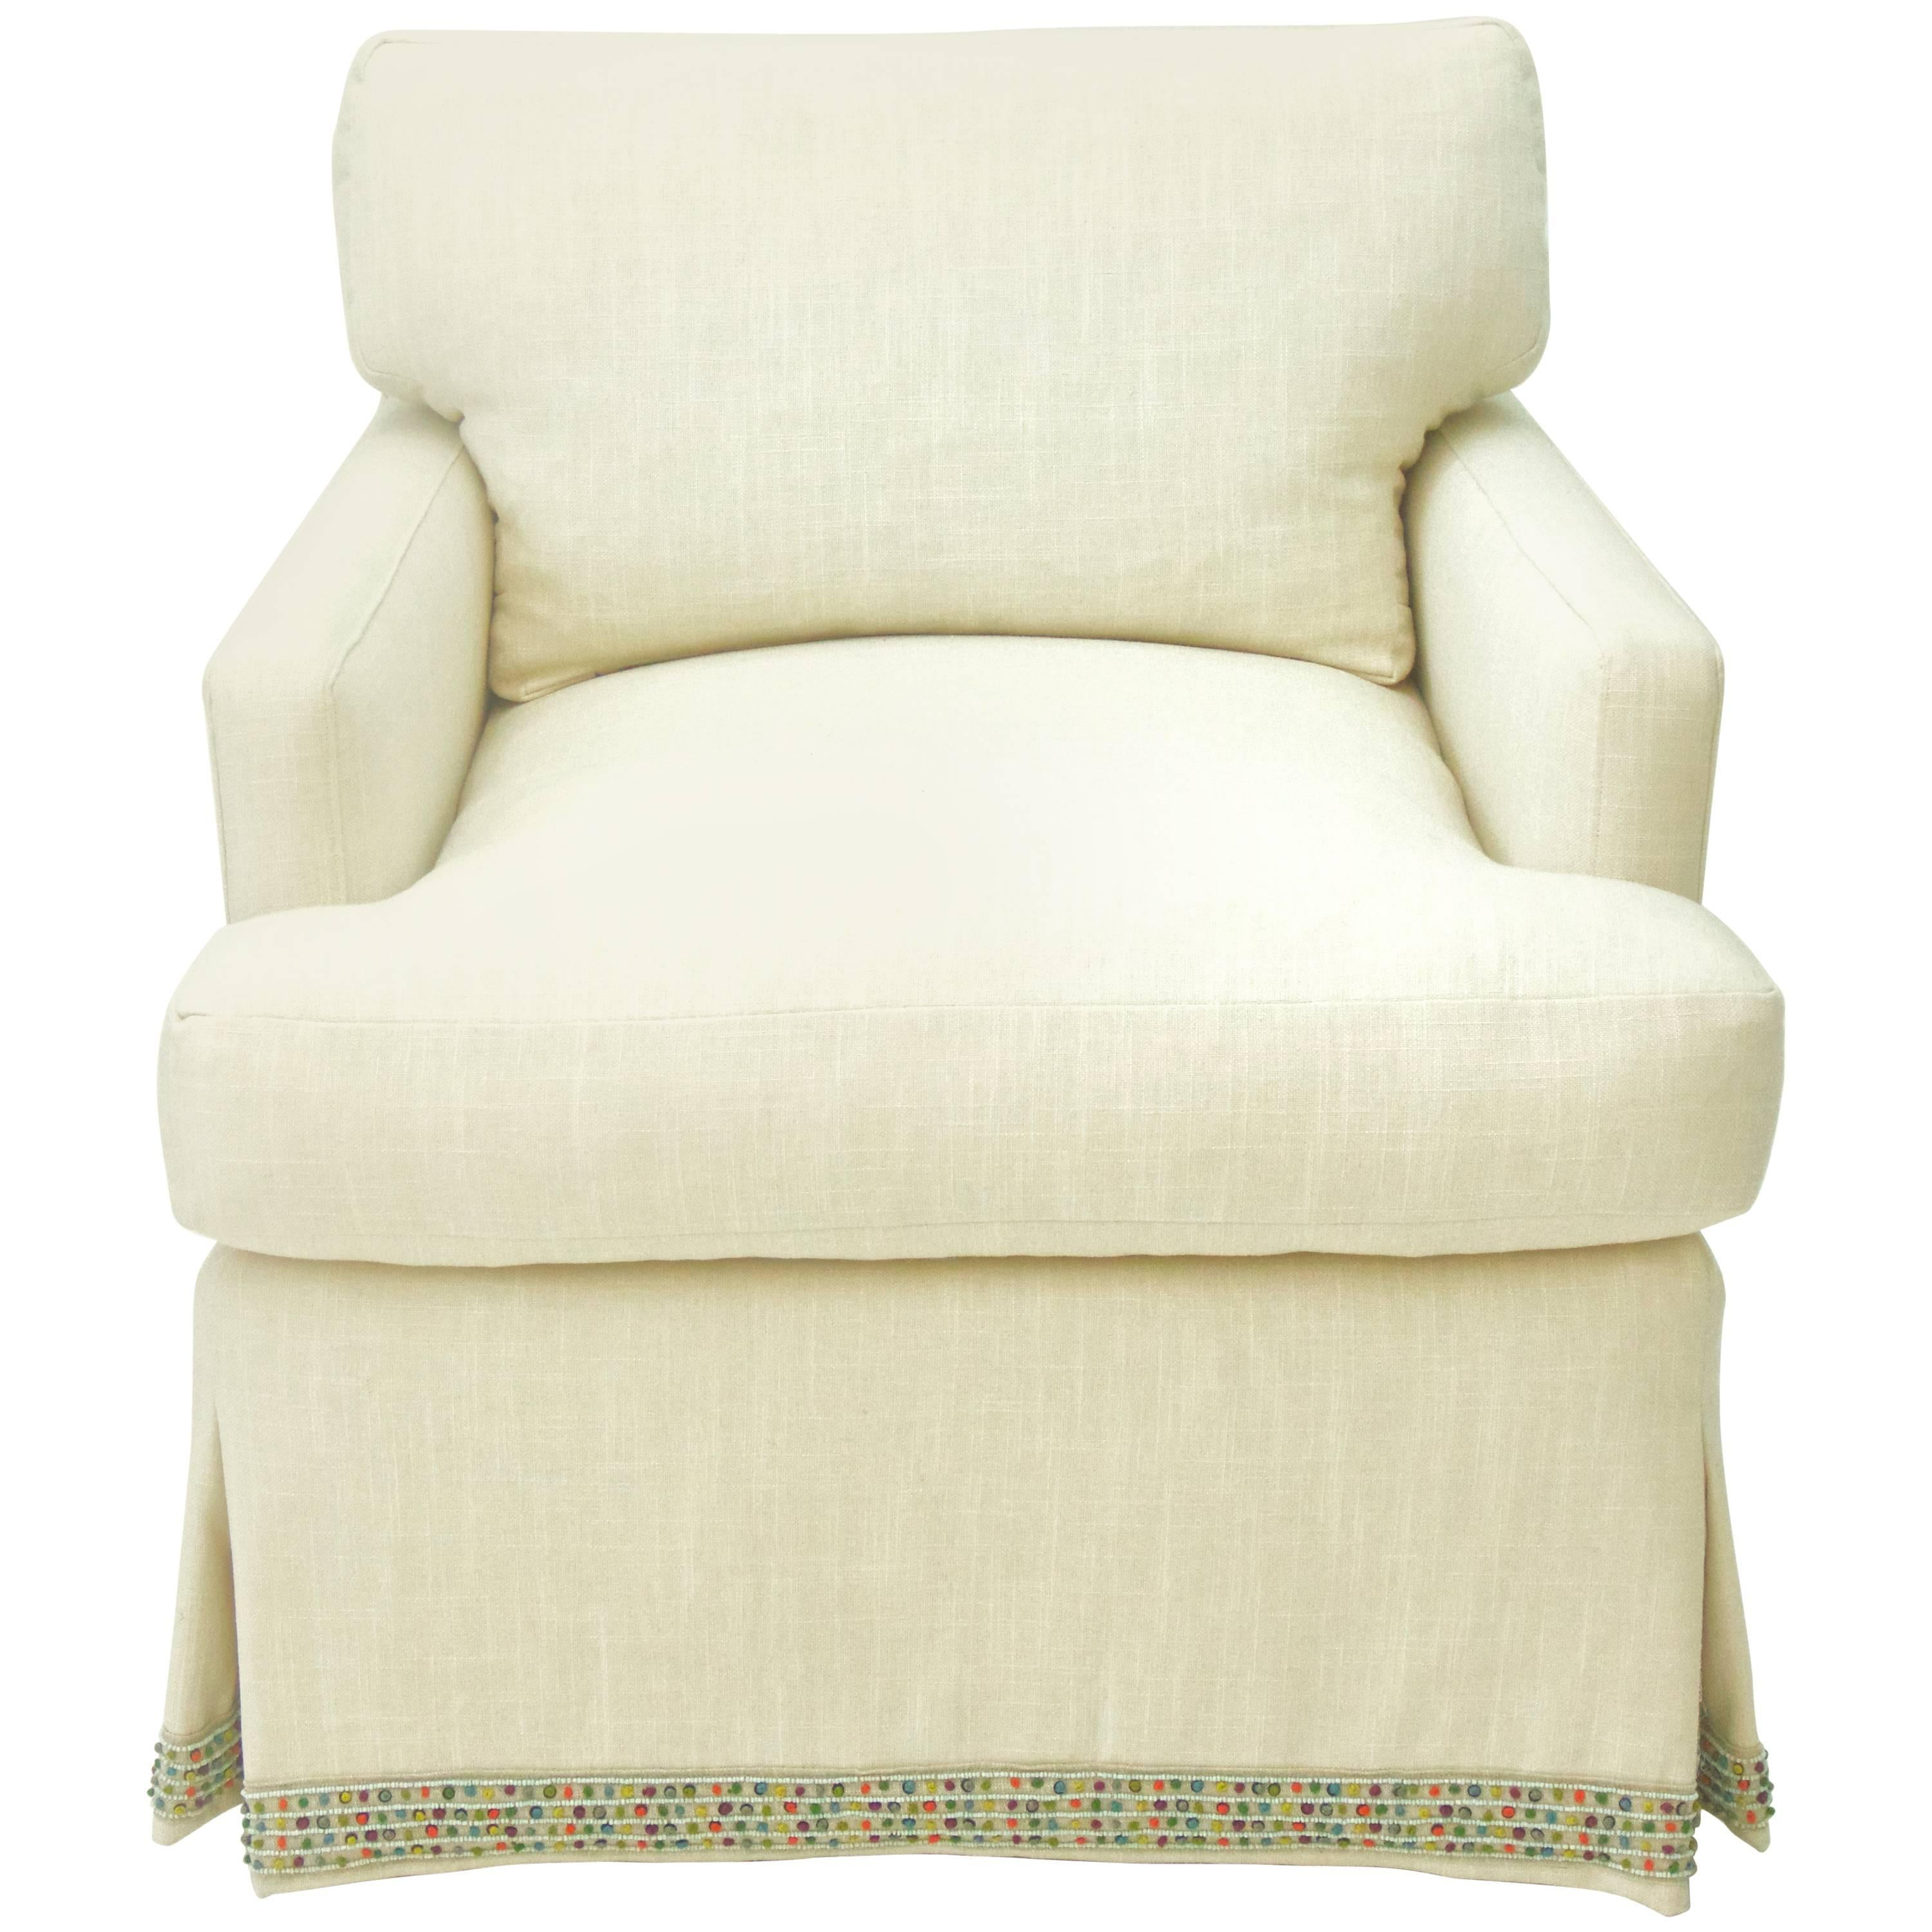 Attirant Skirted Upholstered Club Chair For Sale